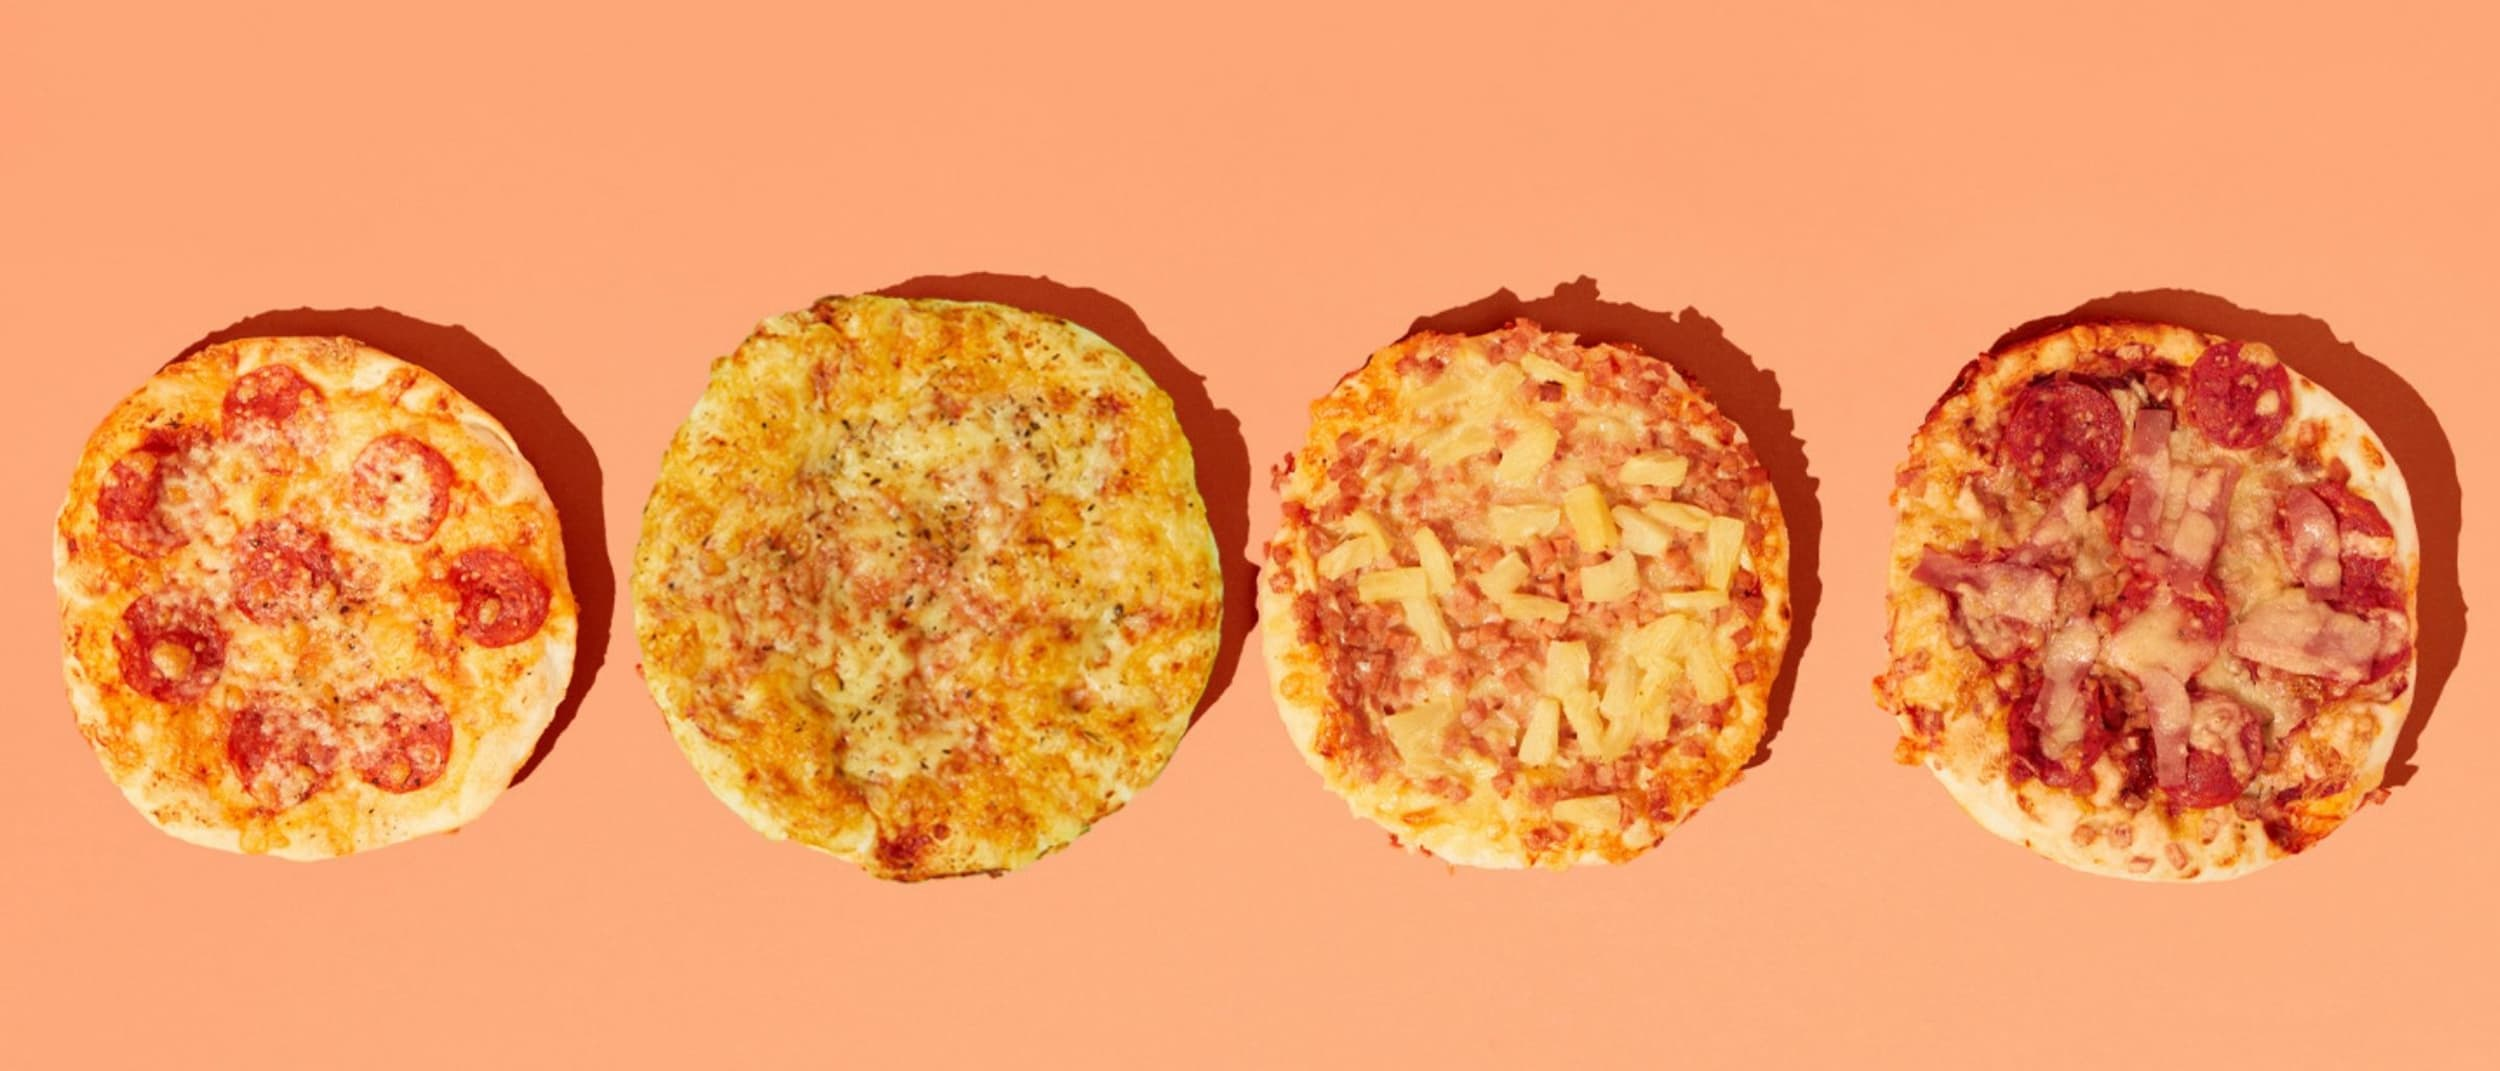 Bakers Delight: Any 2 pizzas for $8